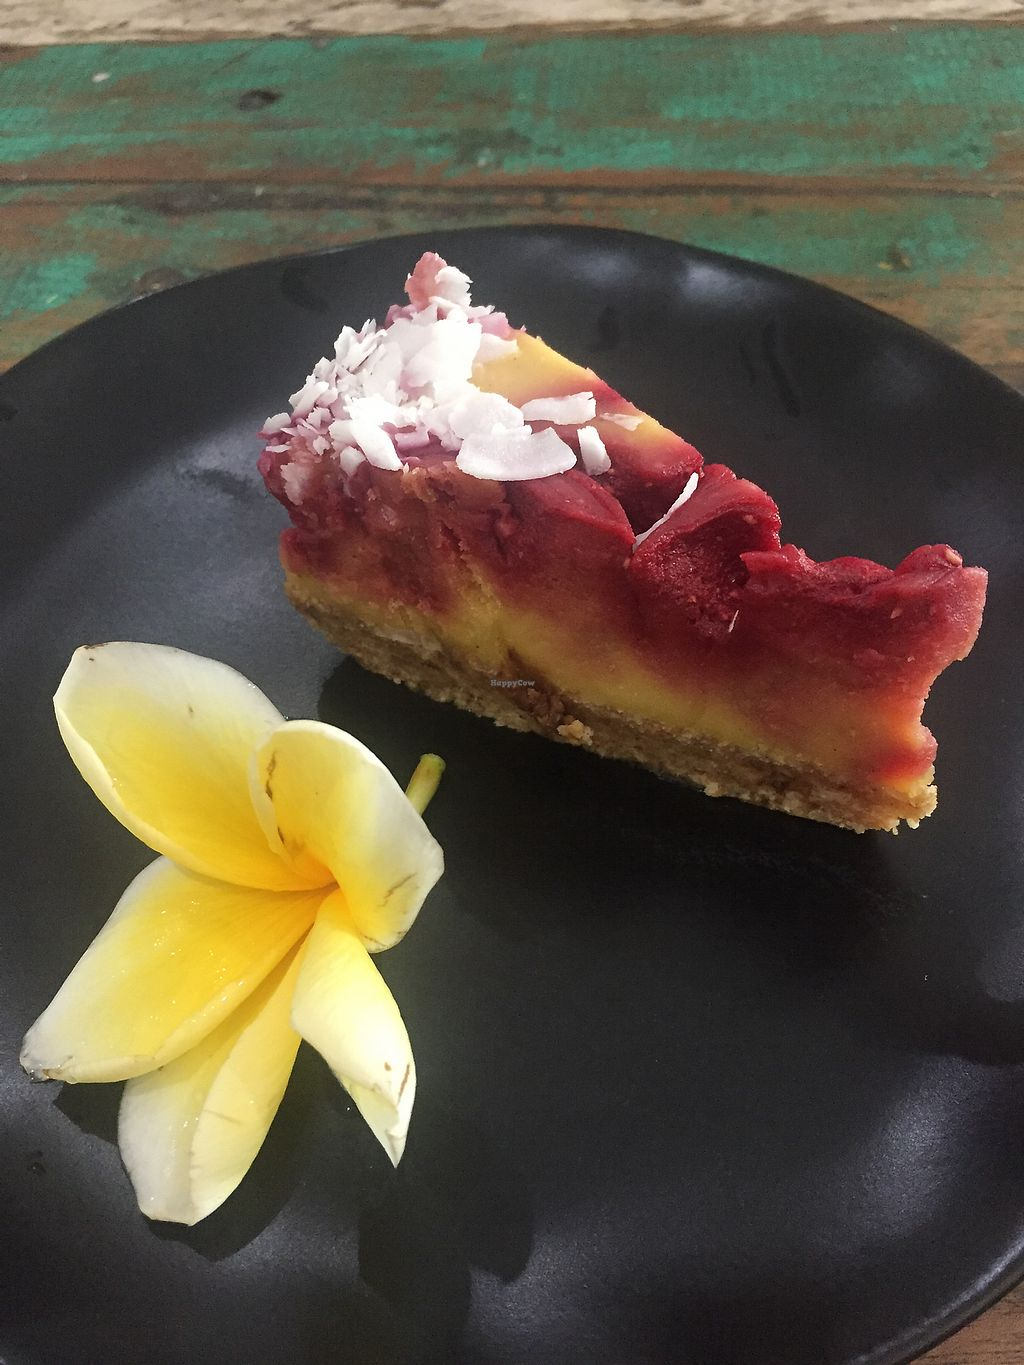 """Photo of CLOSED: The Spicy Coconut  by <a href=""""/members/profile/auroreFR"""">auroreFR</a> <br/>raspberry and lemon cheesecake <br/> August 19, 2017  - <a href='/contact/abuse/image/73419/294342'>Report</a>"""